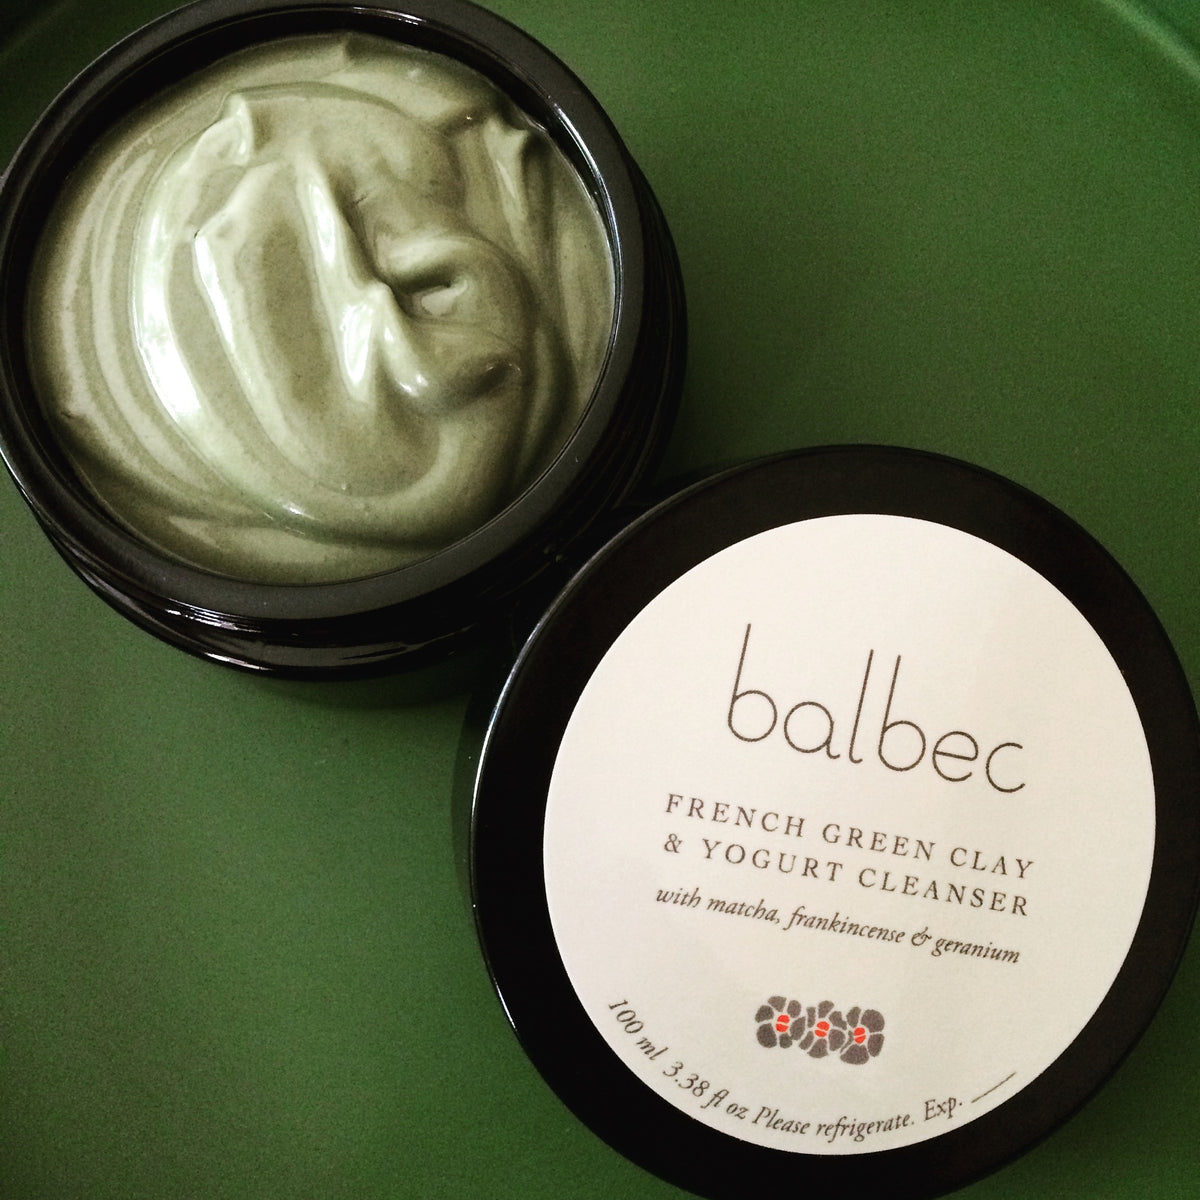 Balbec beauty: French Green Clay and Yogurt Cleanse with Matcha, Frankincense, & Geranium. A perfect cleanse. Our fresh. aromatherapeutic, probiotic clay and yogurt cleansers help detoxify, nourish, and hydrate your skin. This is lush, slow beauty.